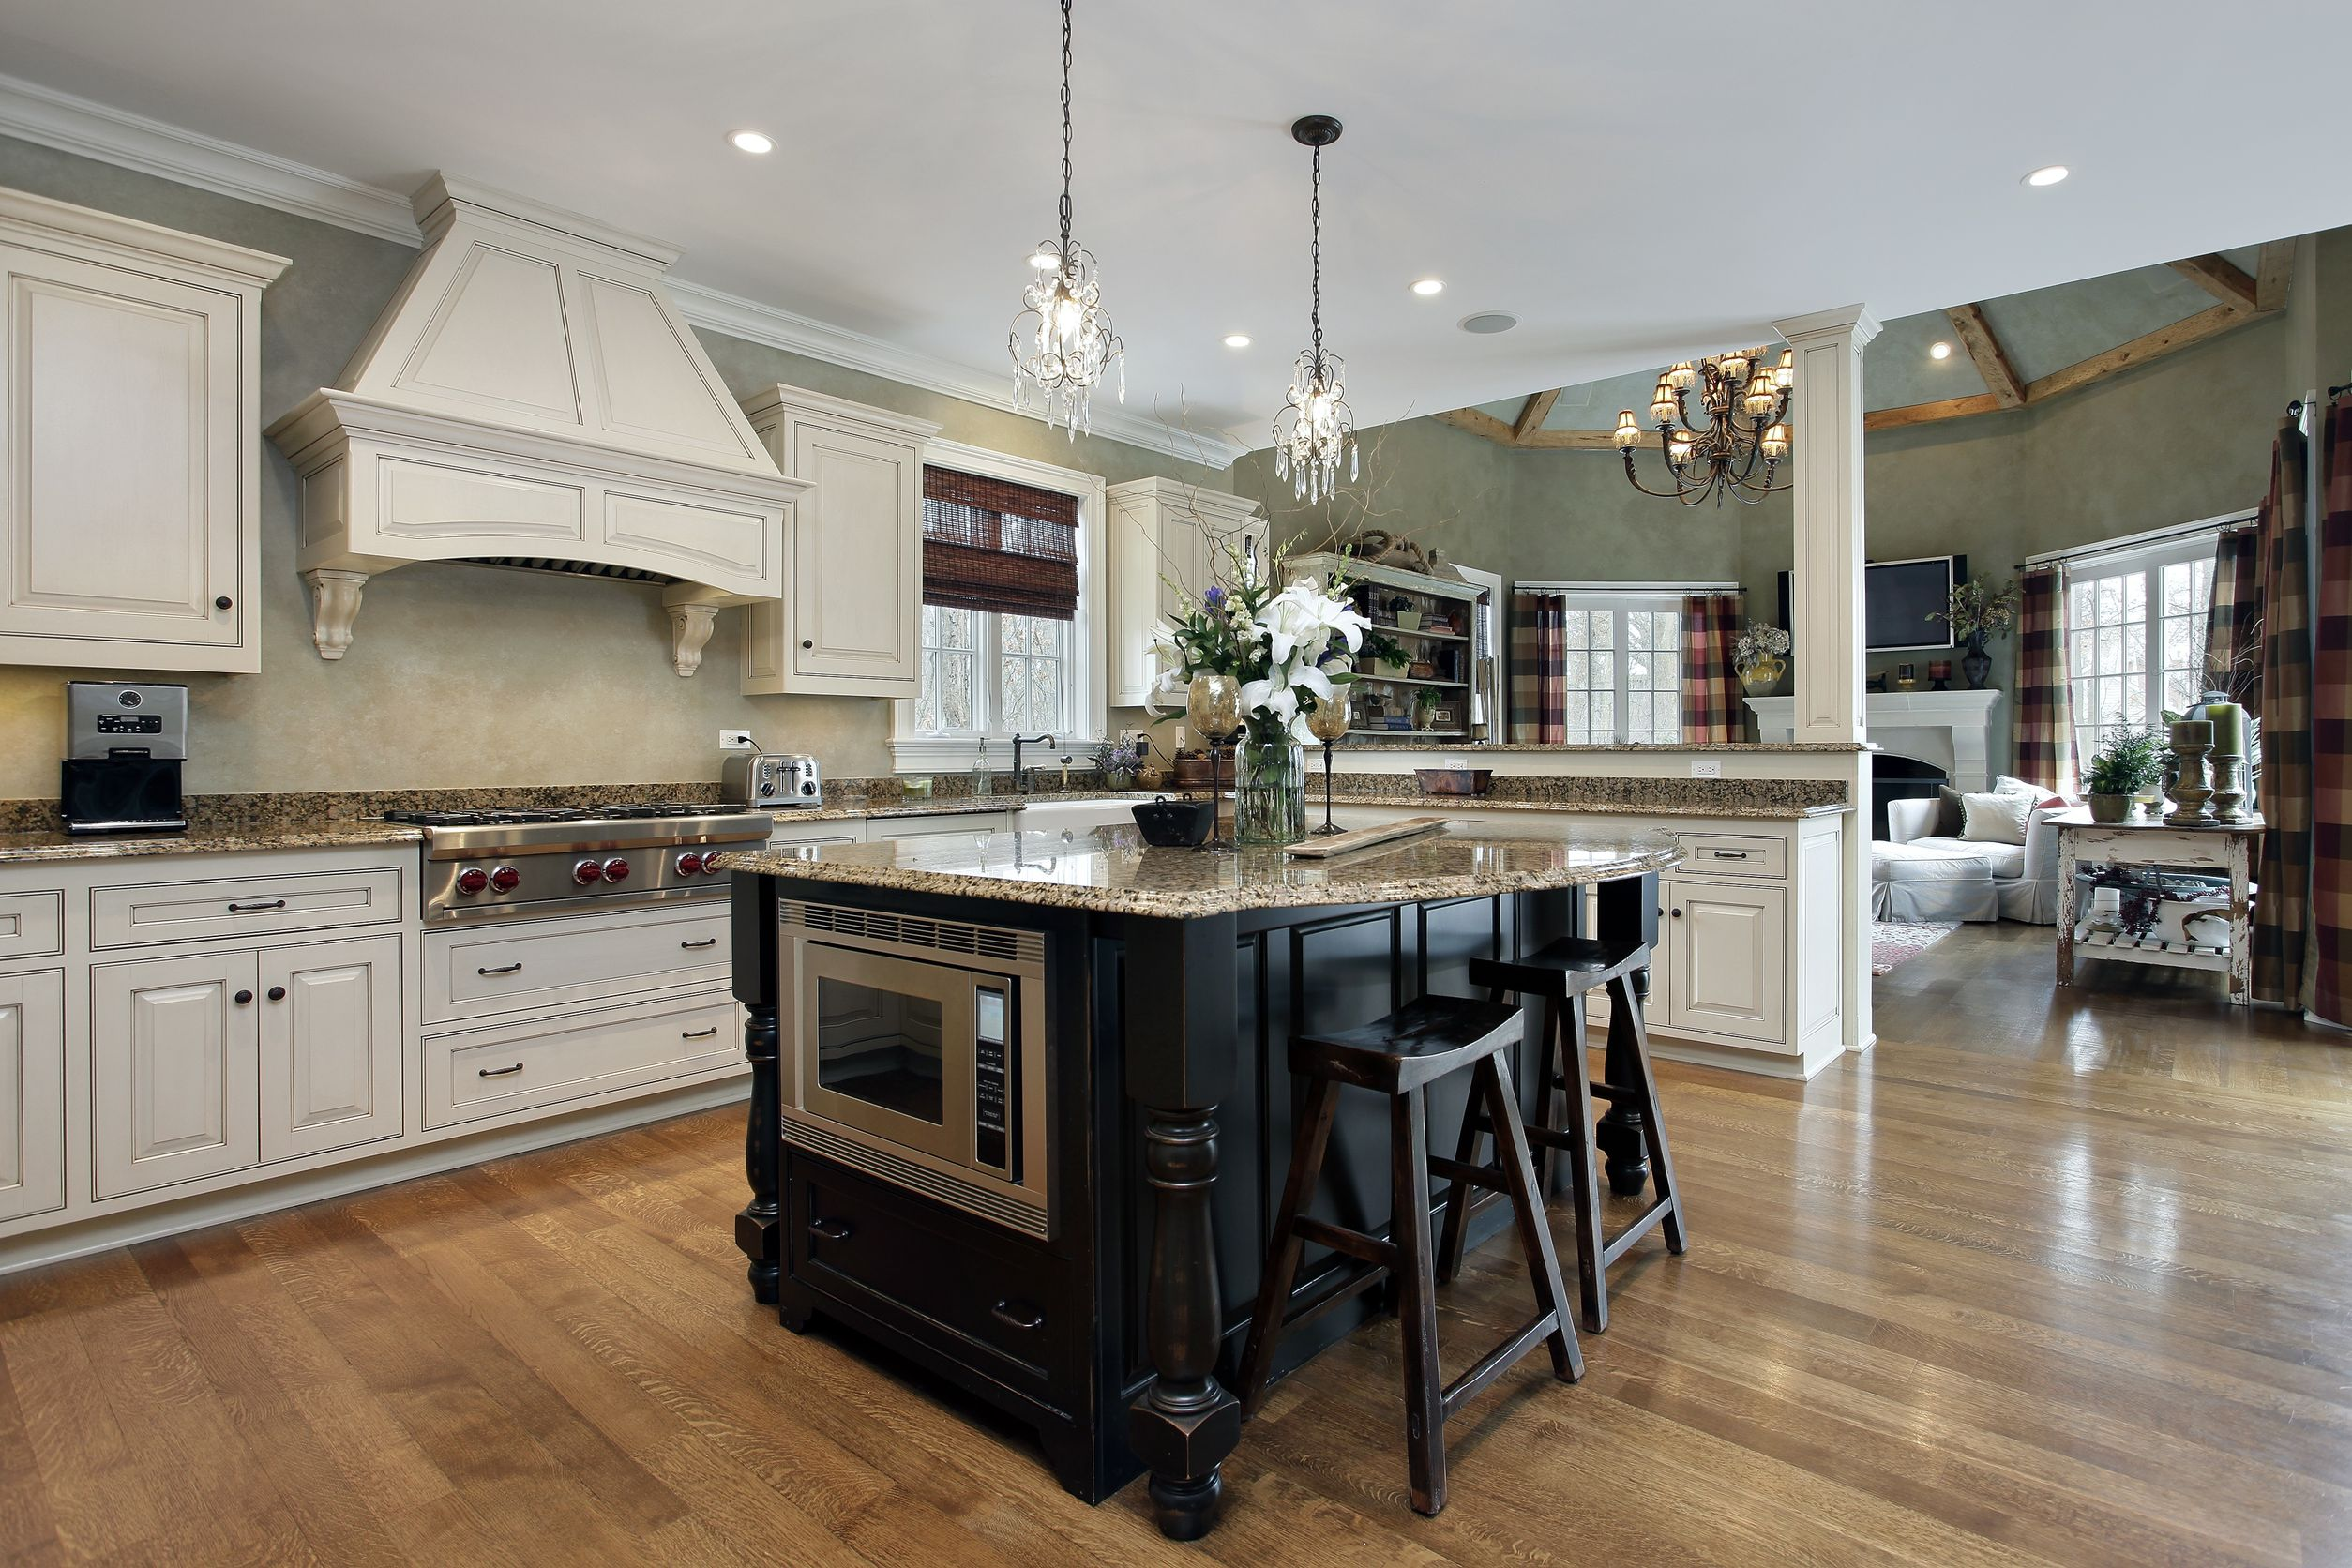 Remodeling Your Kitchen: Determining the Right Layout